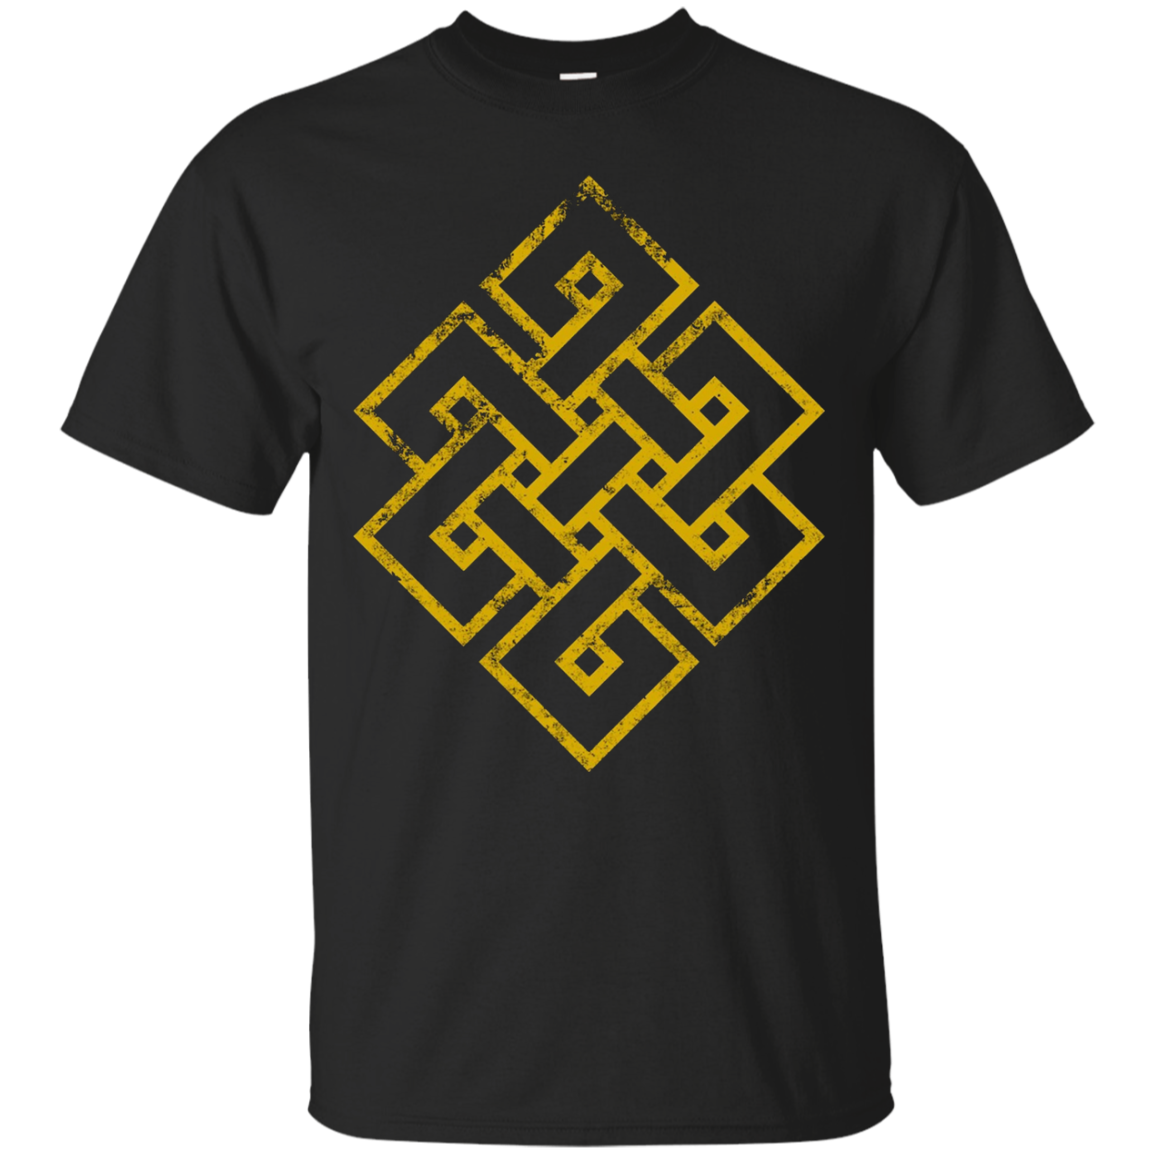 Endless Knot T-Shirt. Buddhism Eternal Knot Buddha Tee